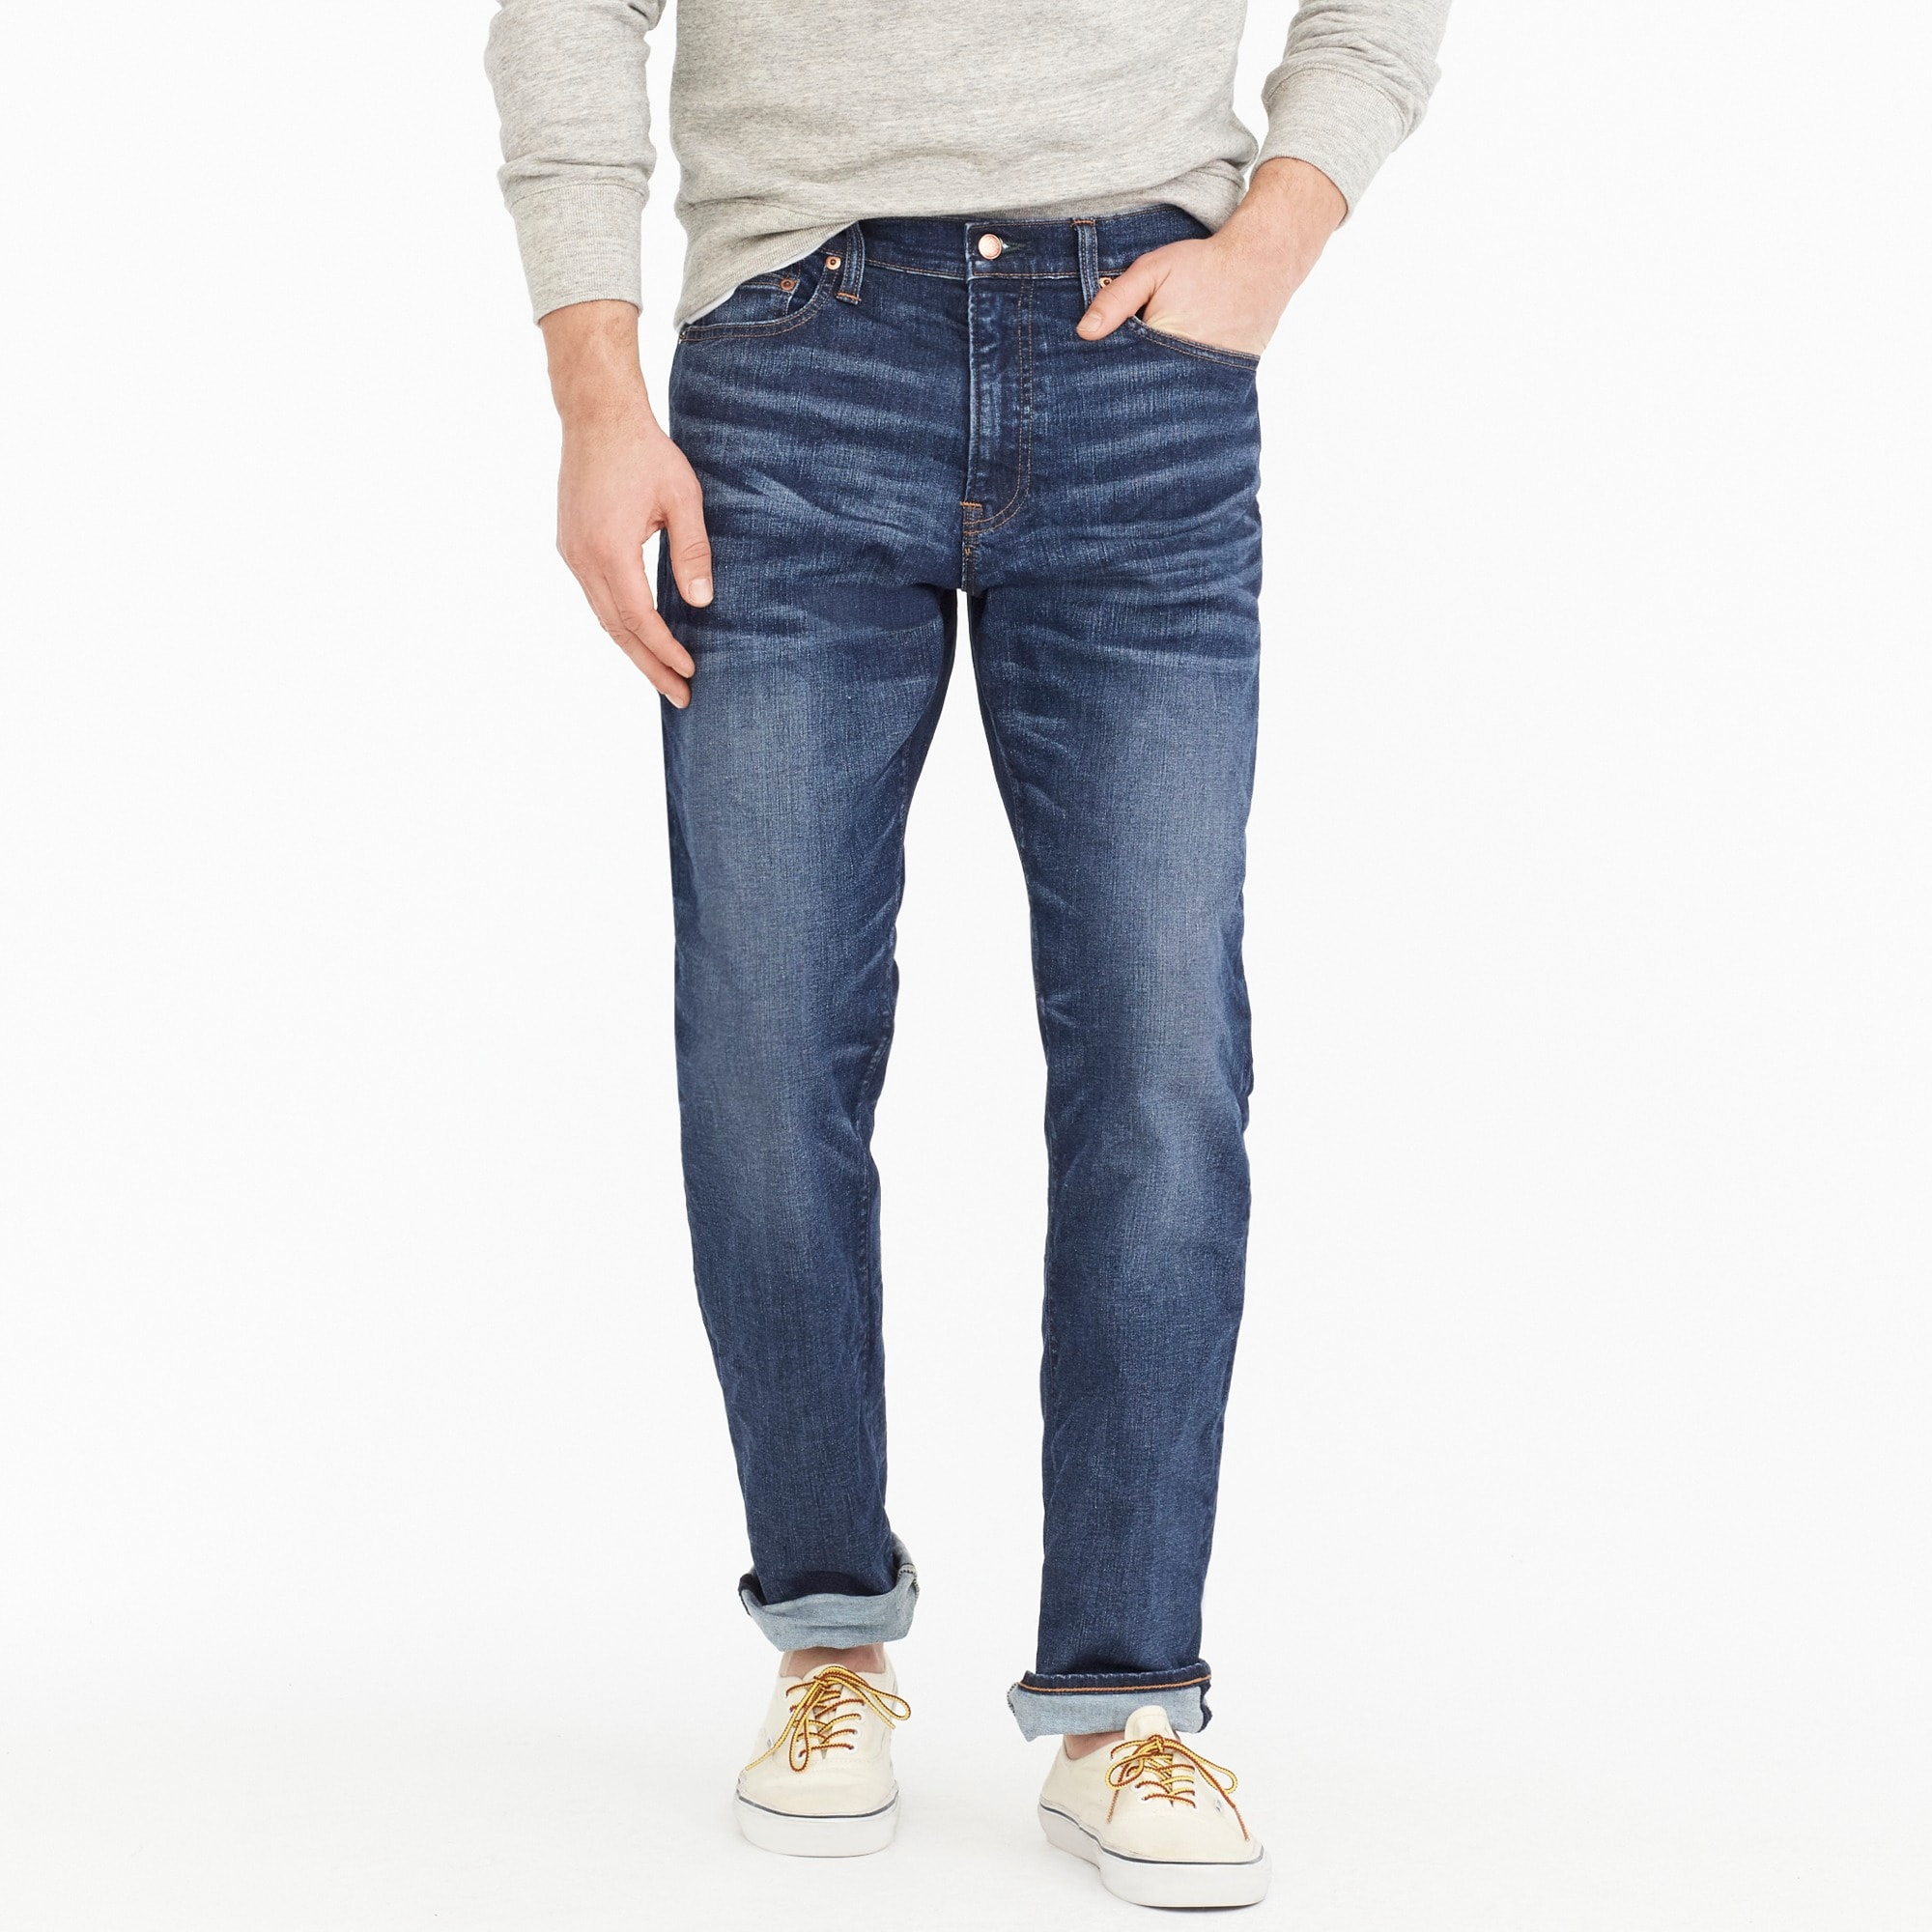 mens 1040 Athletic-fit stretch jean in Dalton wash